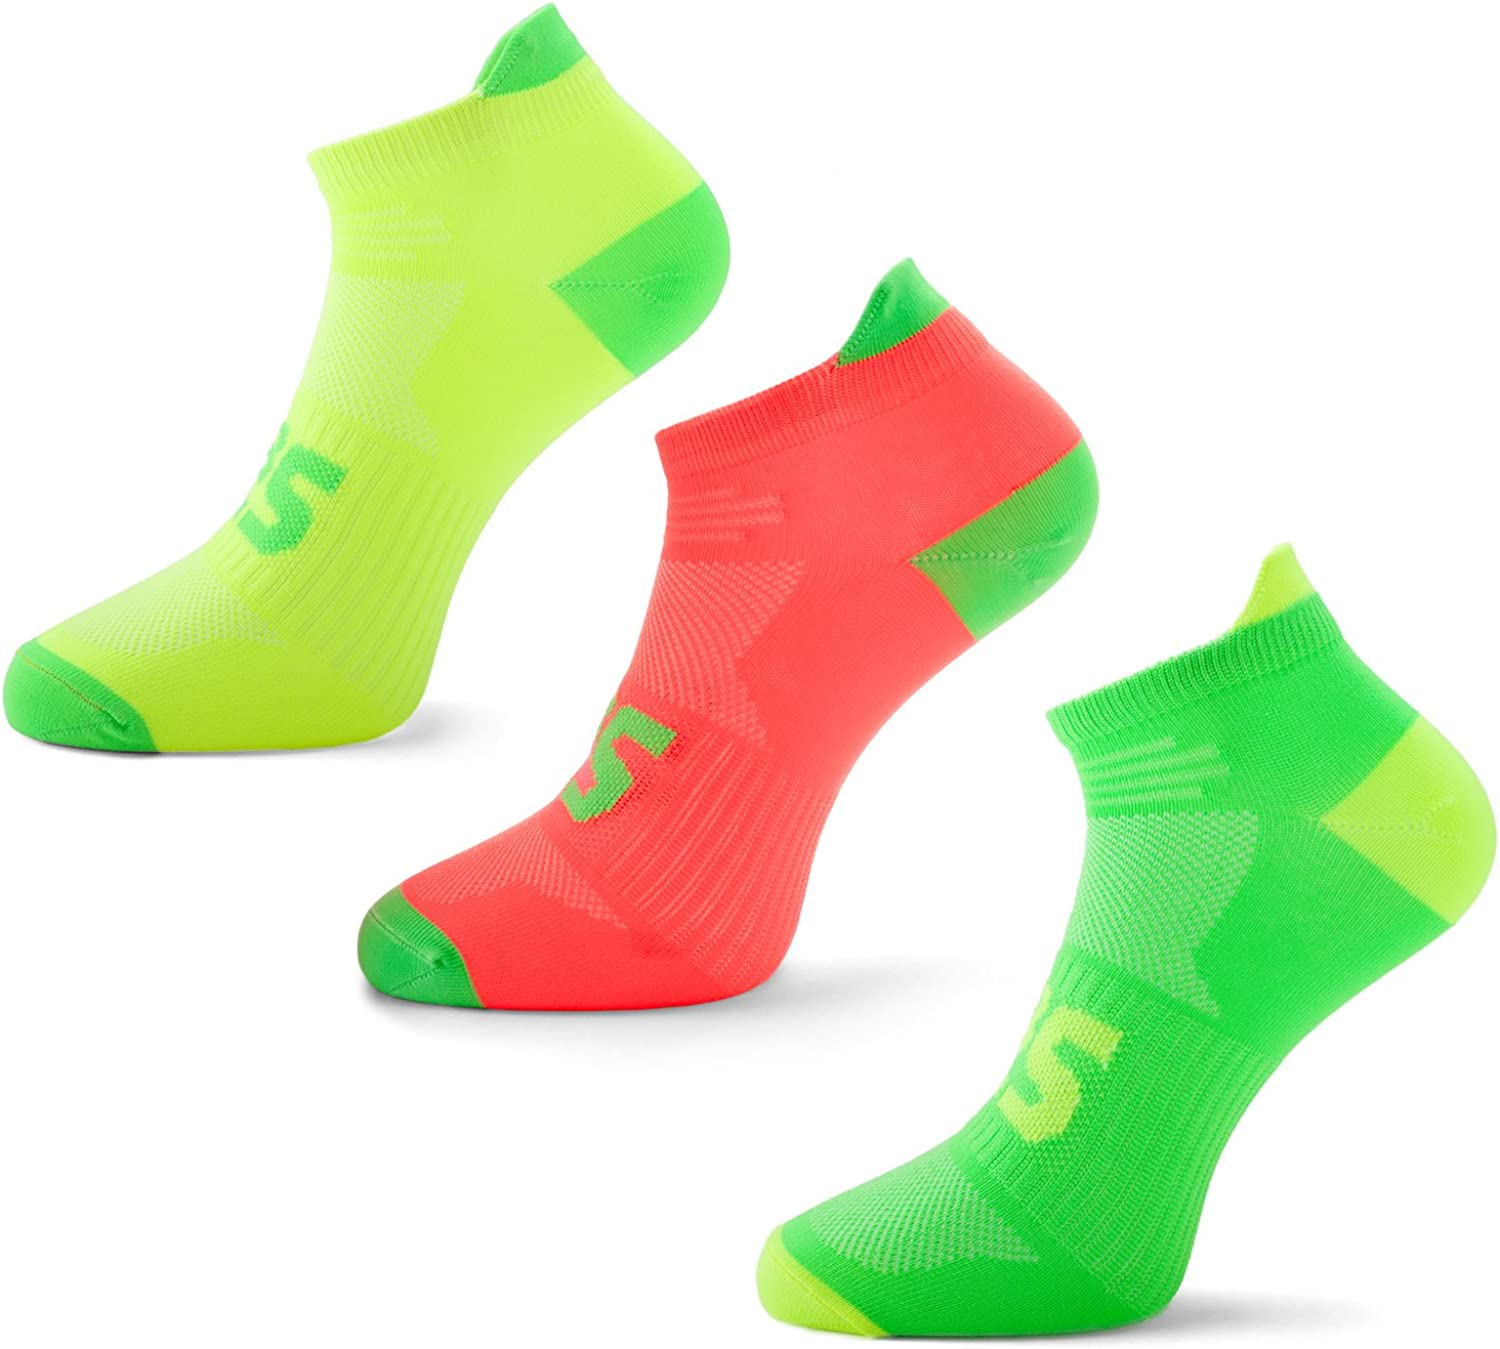 SLS3 Thin Running Socks - Selling rankings Anti Ultra Light Colors Neon Blister All items in the store